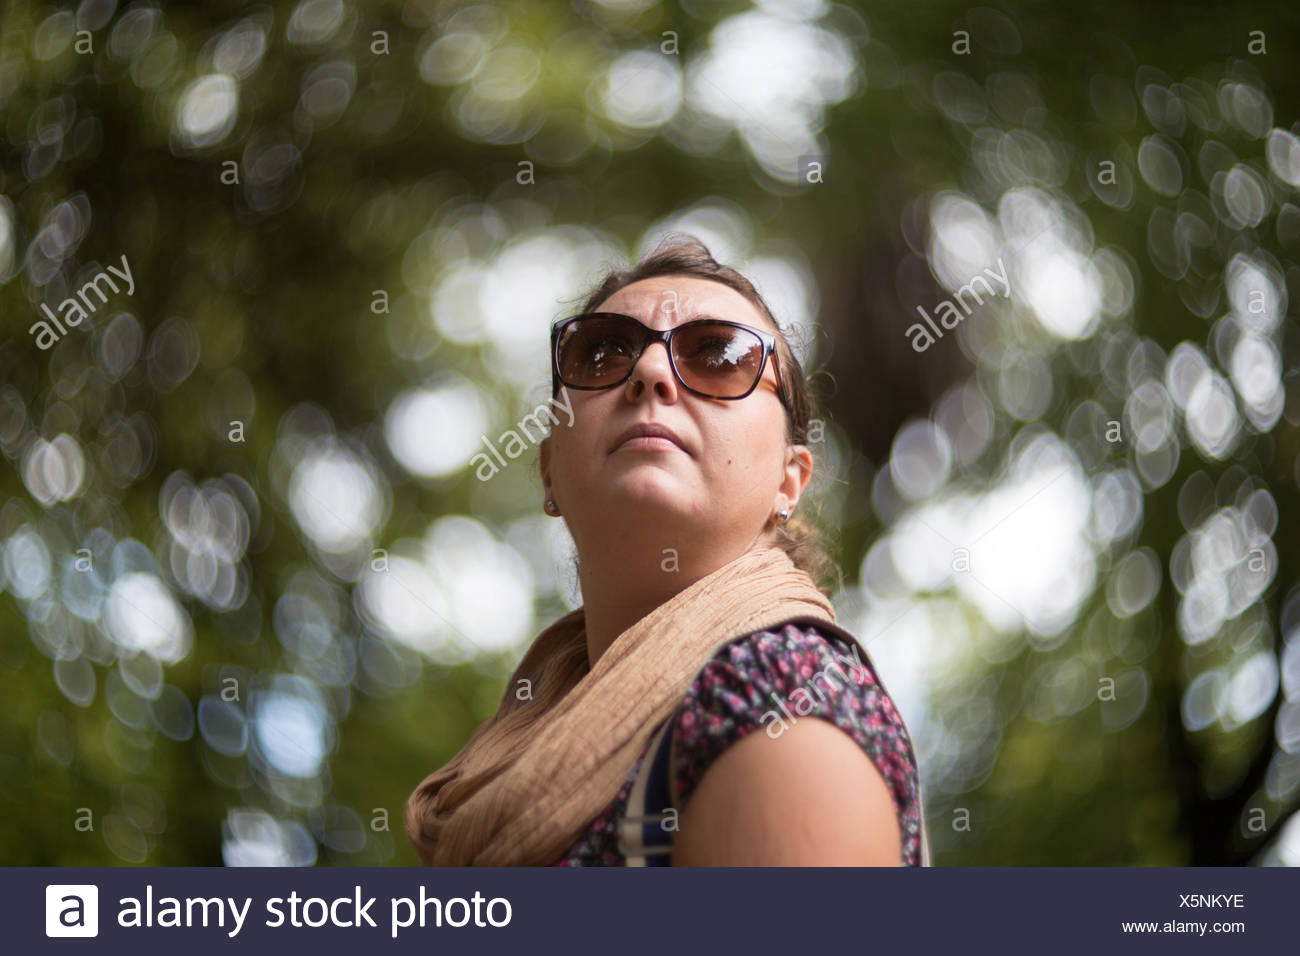 Portrait of a Mid adult woman in the park Photo Stock